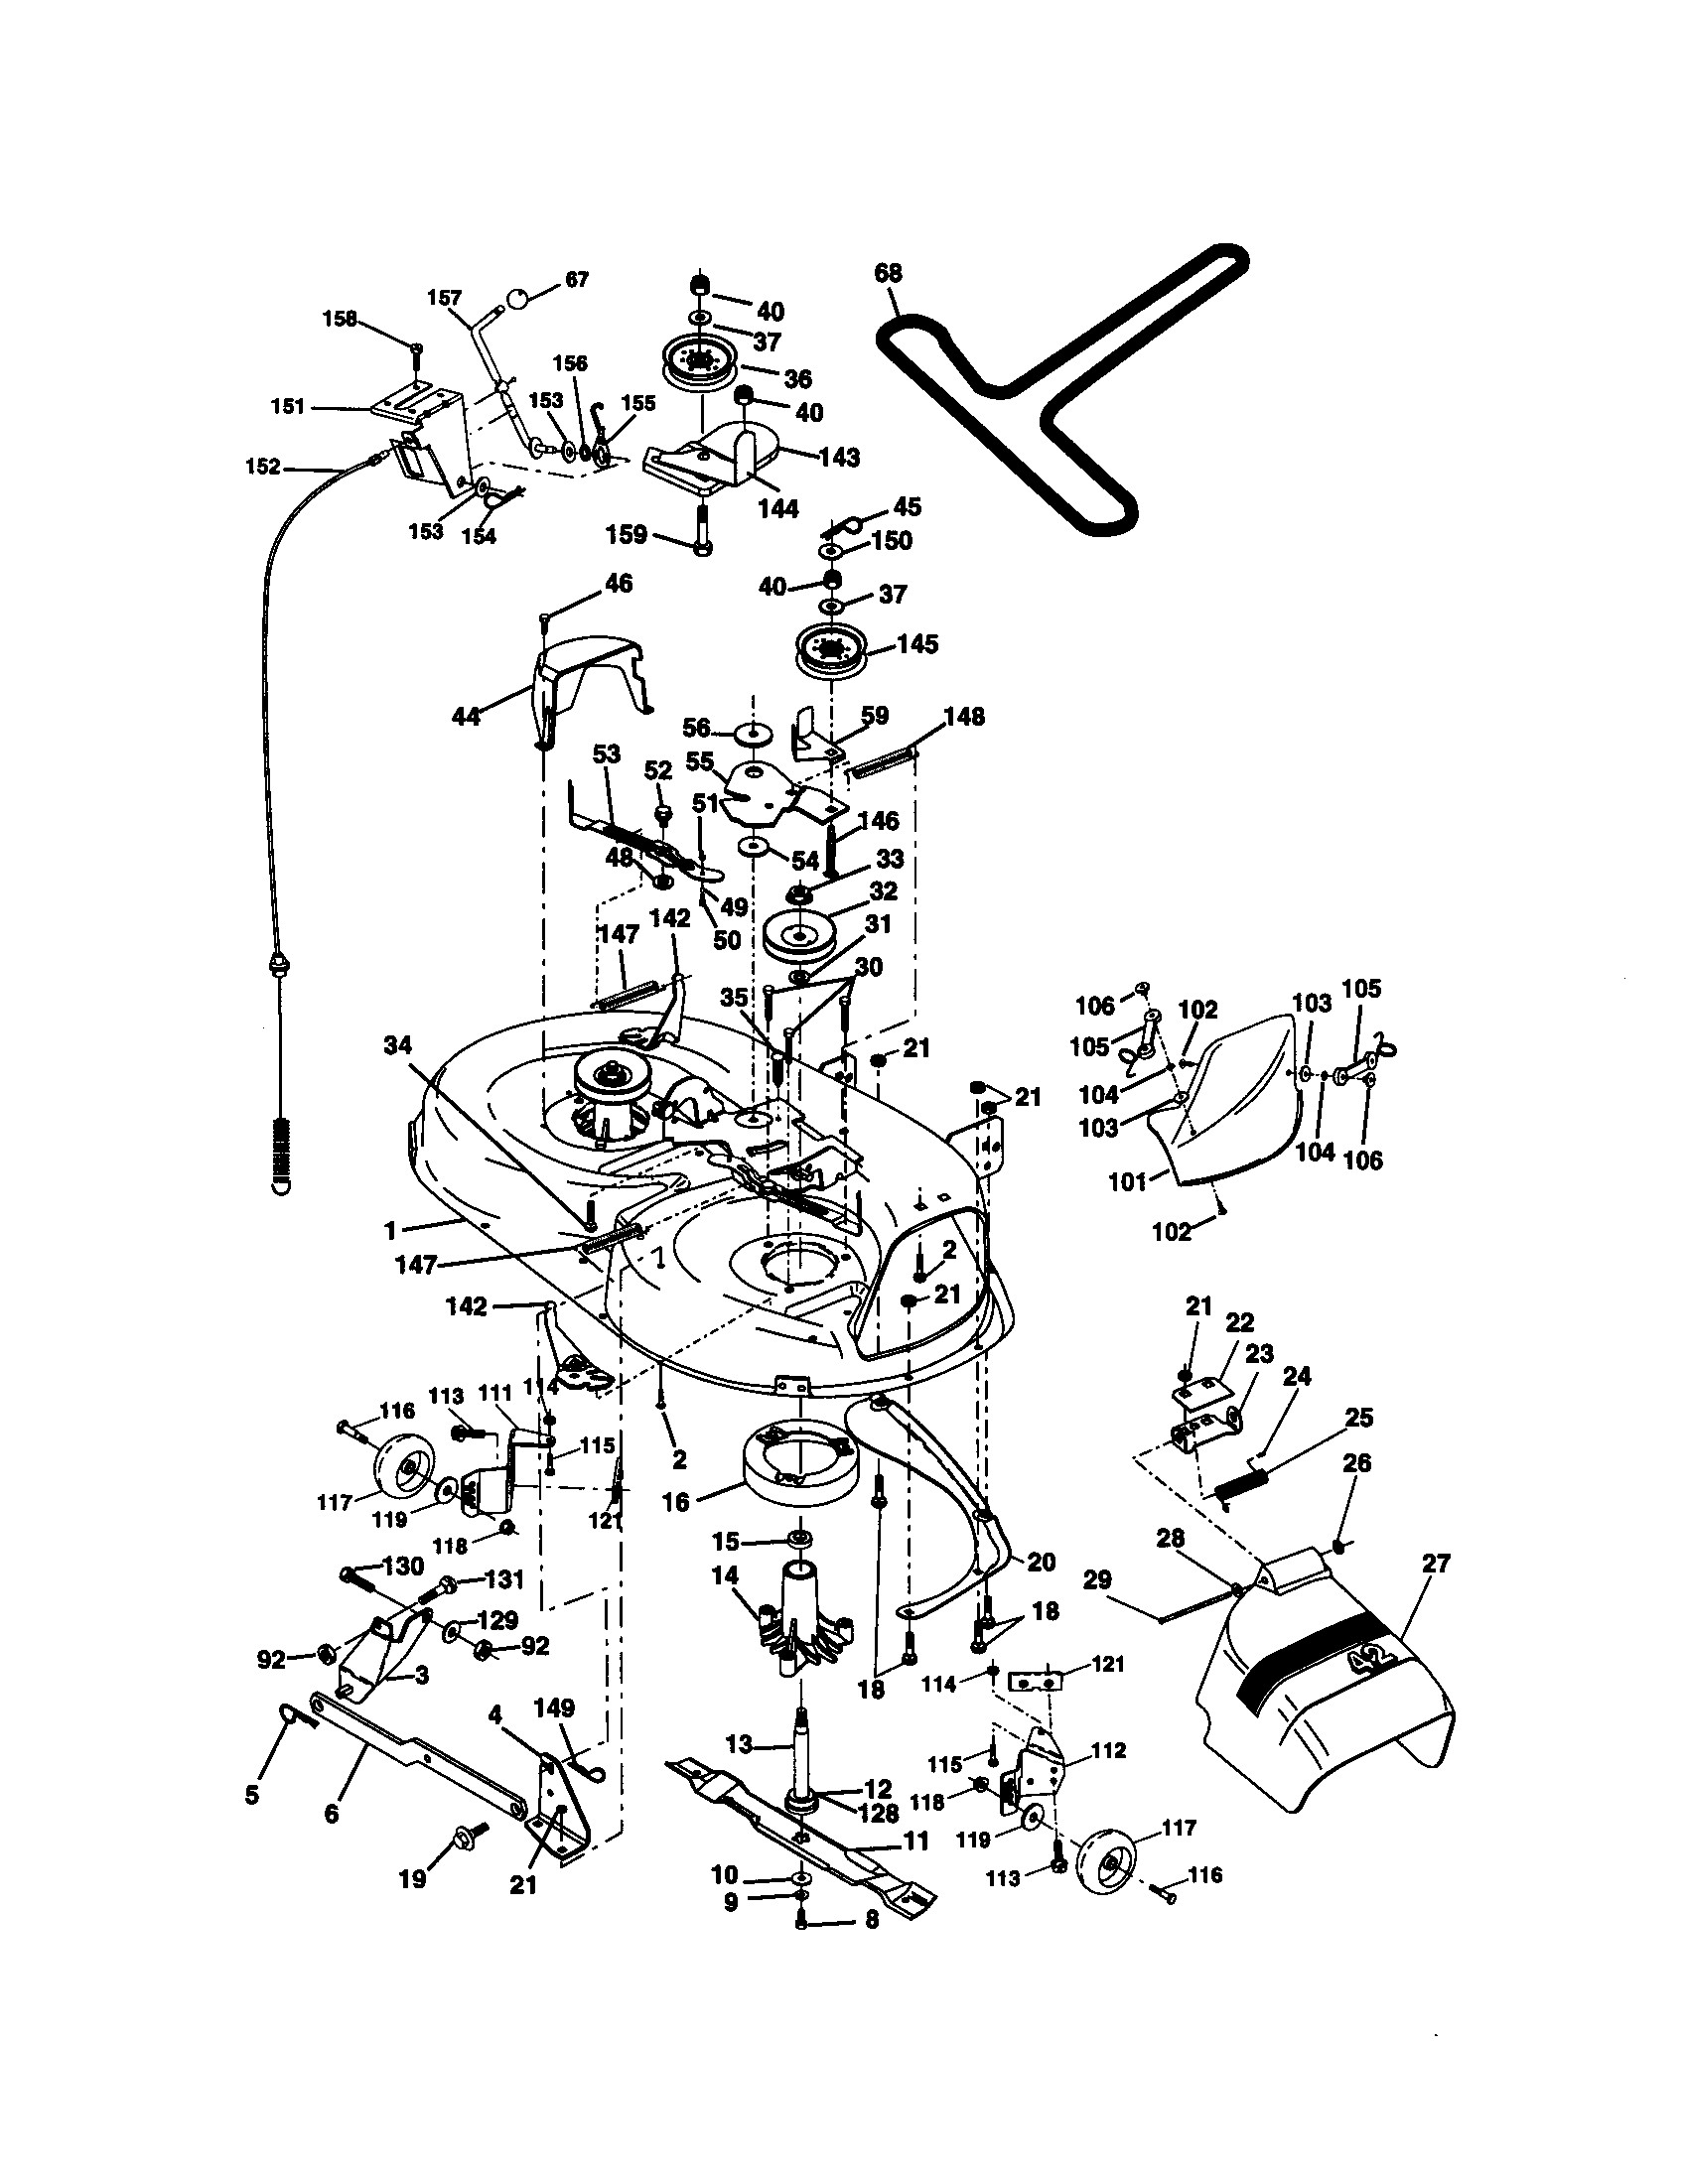 Briggs and stratton lawn mower engine parts diagram snapper 00 briggs and stratton lawn mower engine parts diagram craftsman model lawn tractor genuine parts of briggs publicscrutiny Image collections